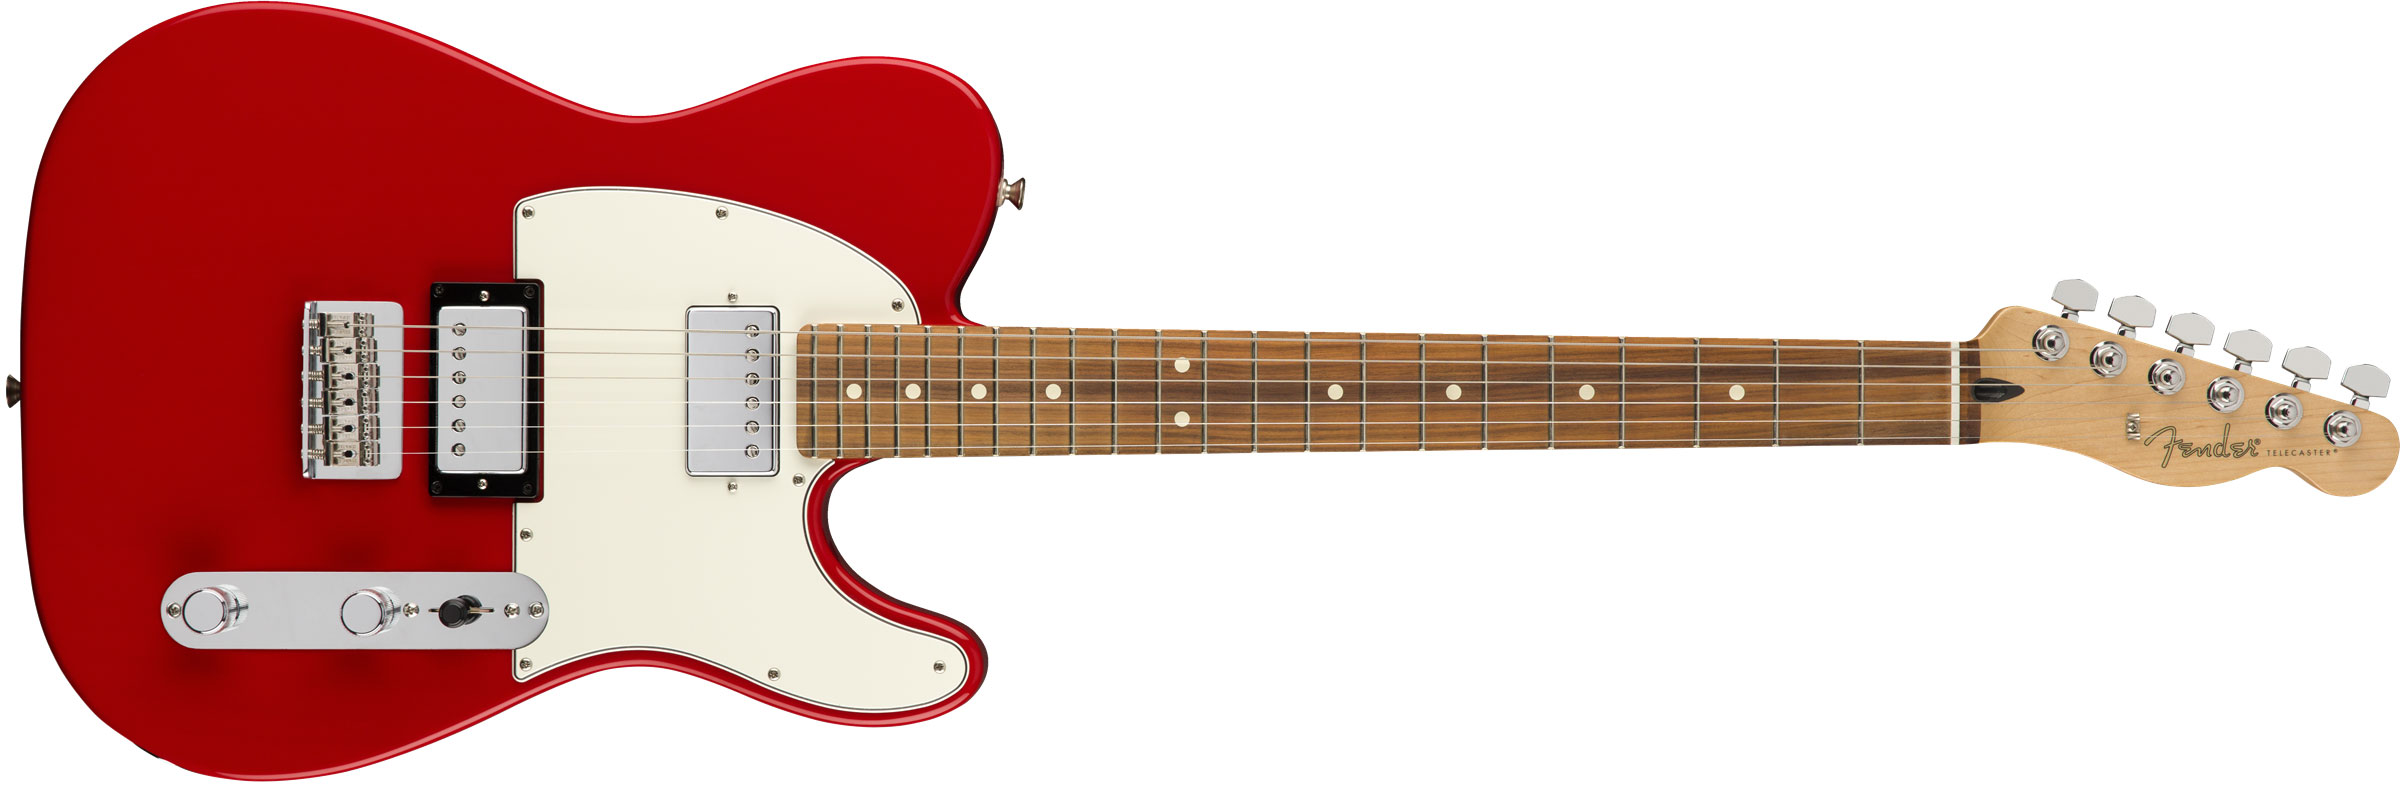 GUITARRA FENDER 014 5233 - PLAYER TELECASTER HH PF - 525 - SONIC RED